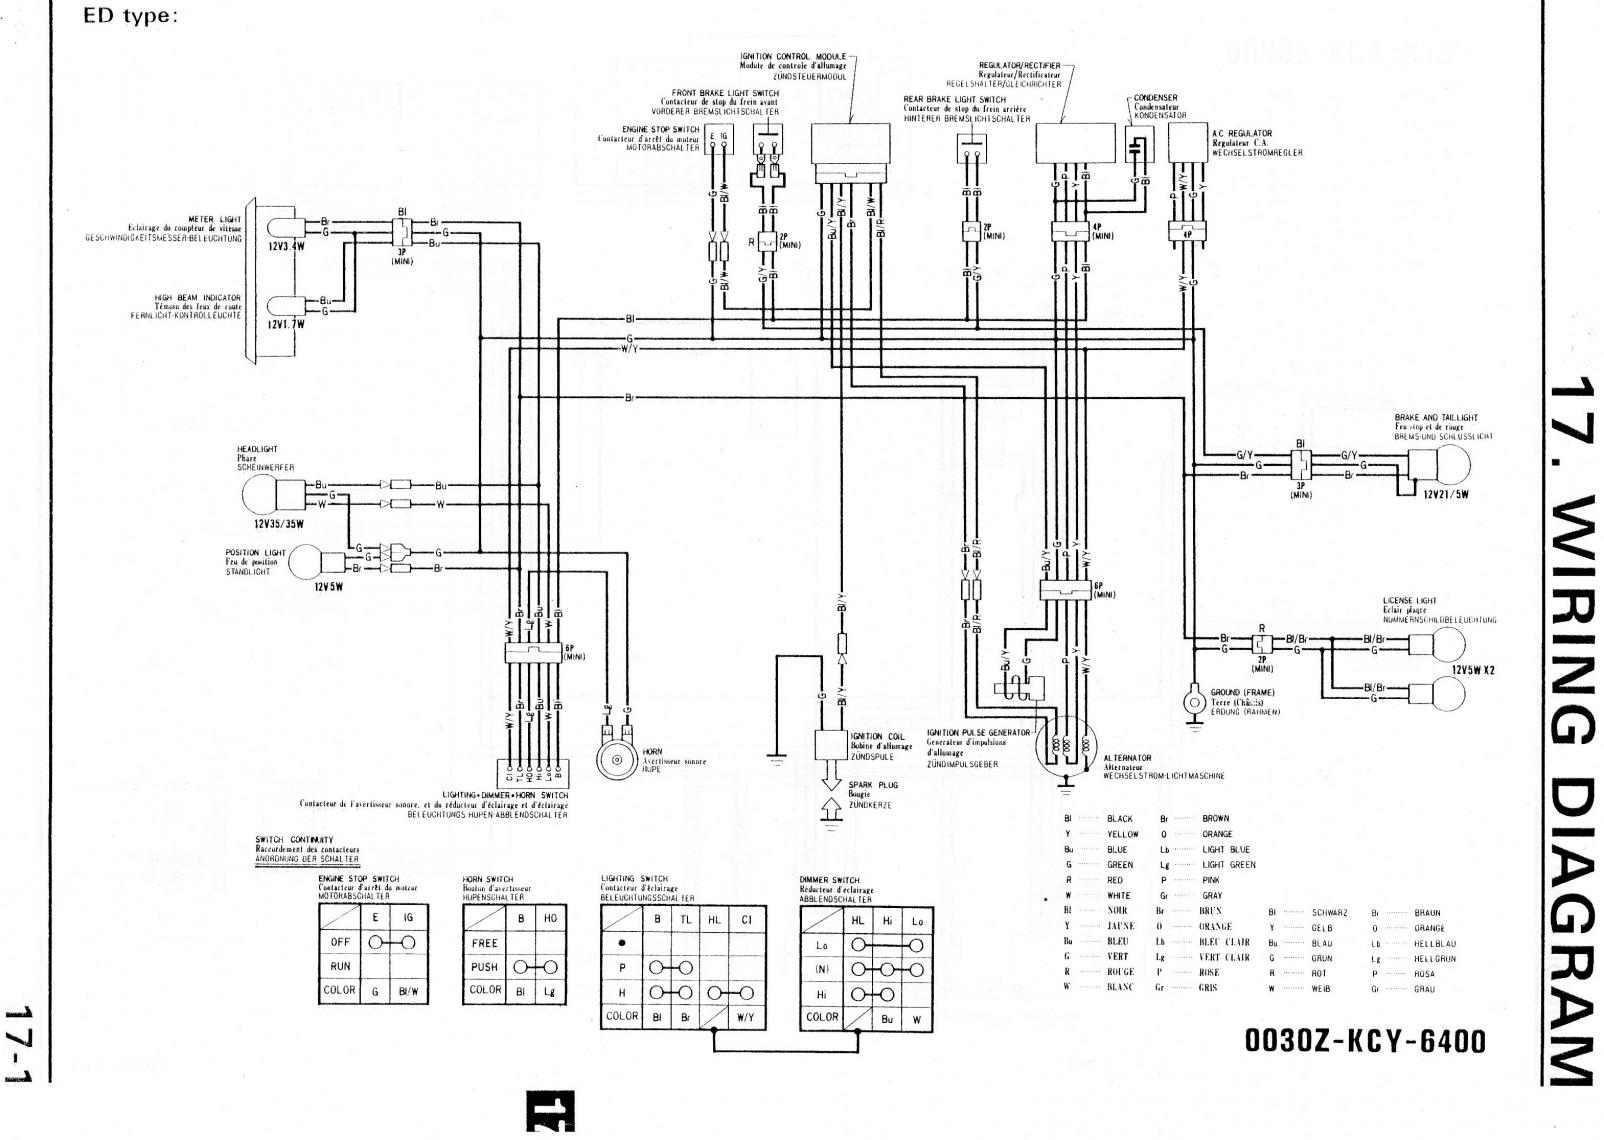 Mitsubishi L200 Wiring Diagram Manual Guide Mirage Fuse Box Layout Triton Library Rh 67 Codingcommunity De K74 Electrical